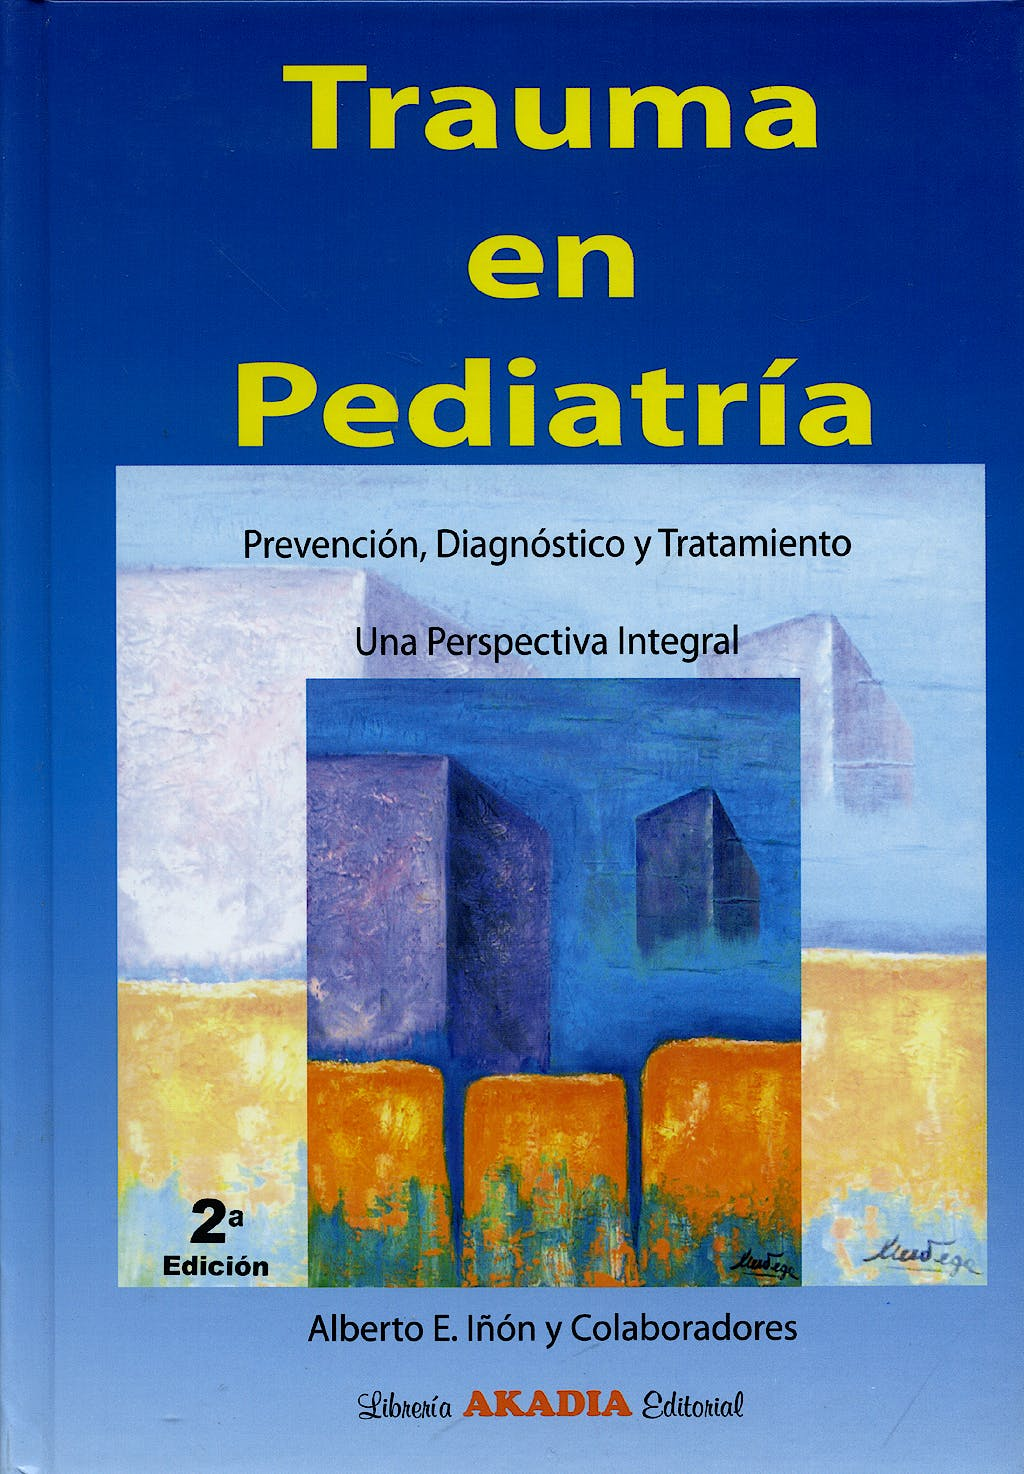 Portada del libro 9789875700963 Trauma en Pediatria. Prevencion, Diagnostico y Tratamiento. una Perspectiva Integral